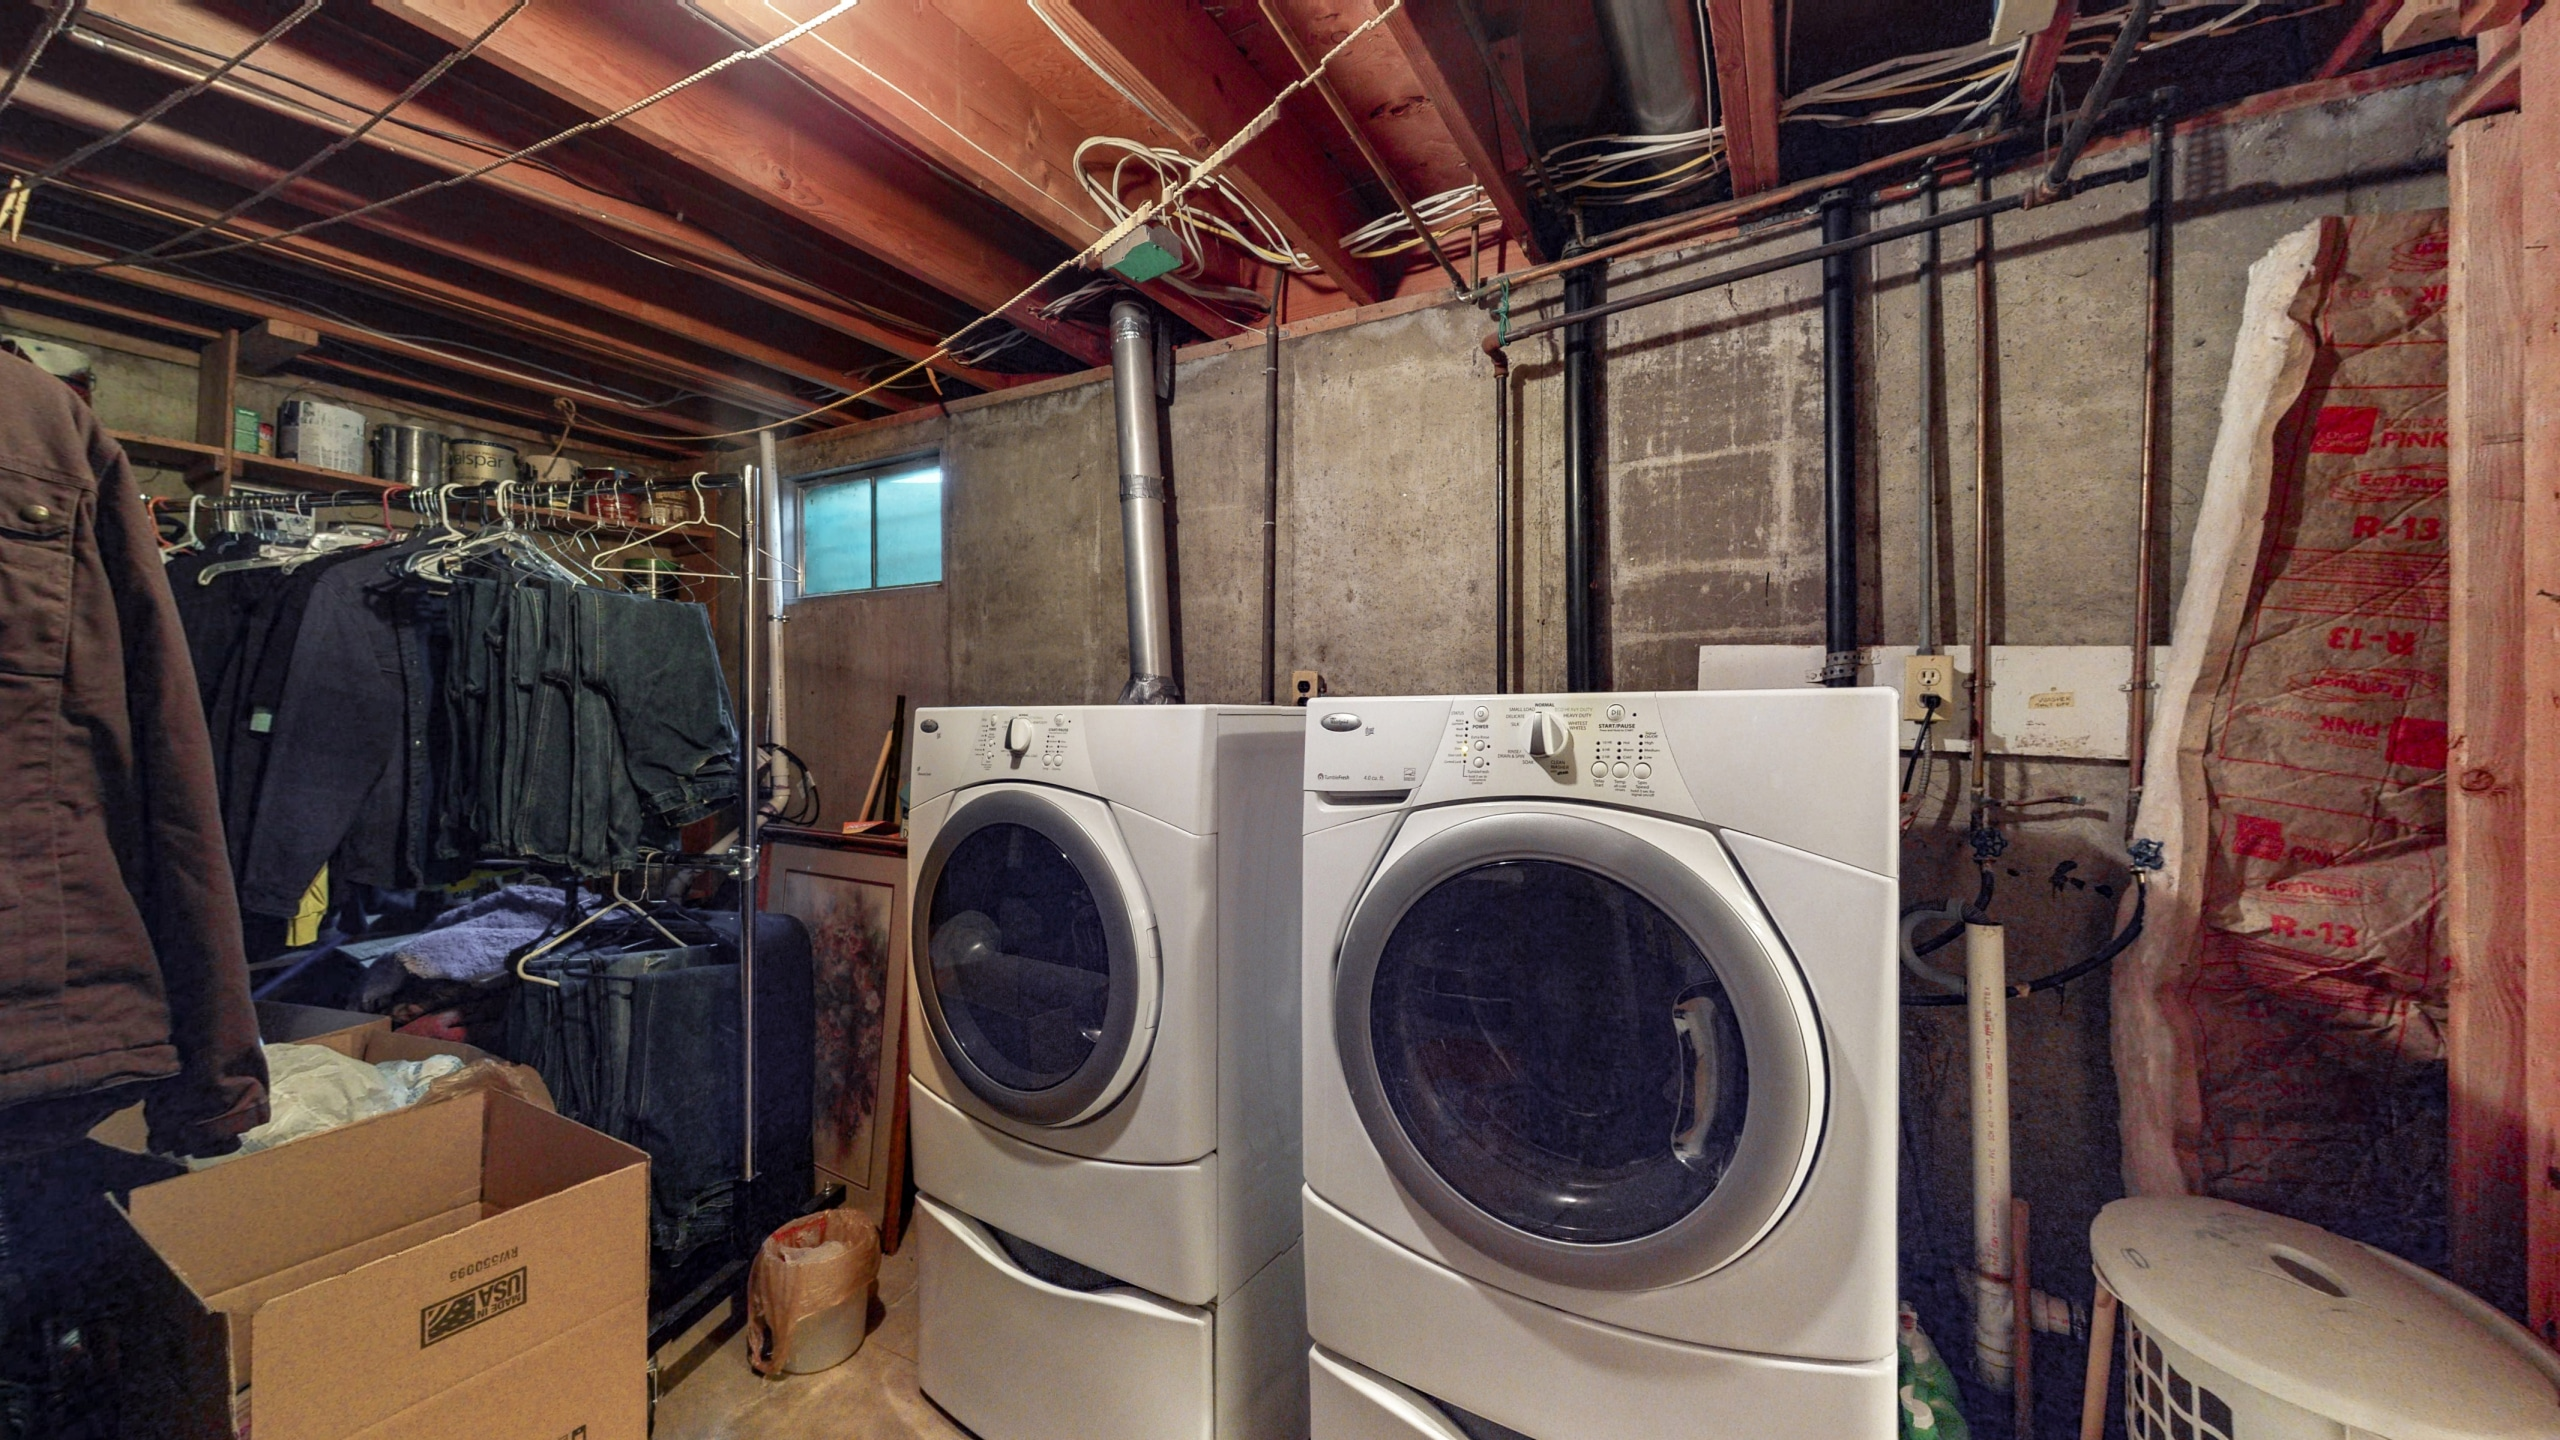 Laundry and utility room, white washer, white dryer